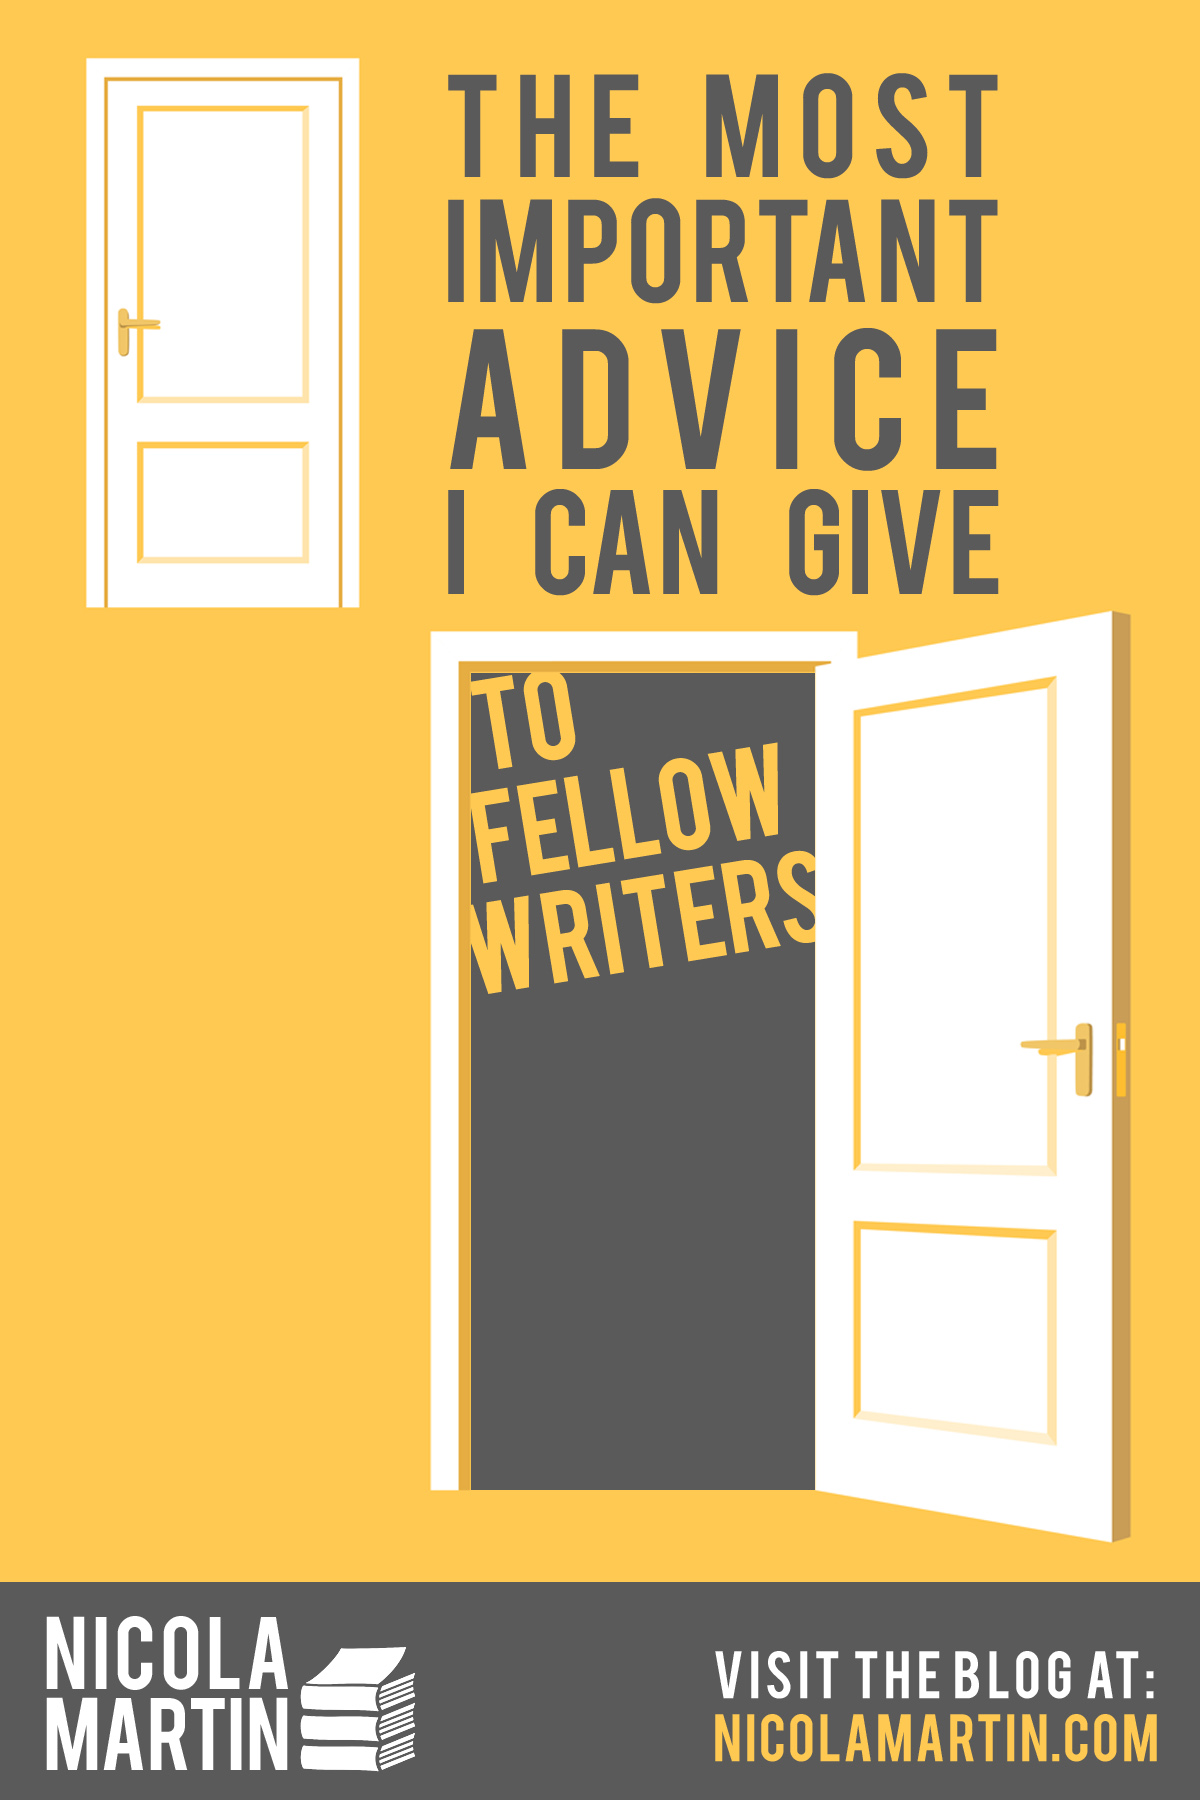 The most important advice I can give to fellow writers